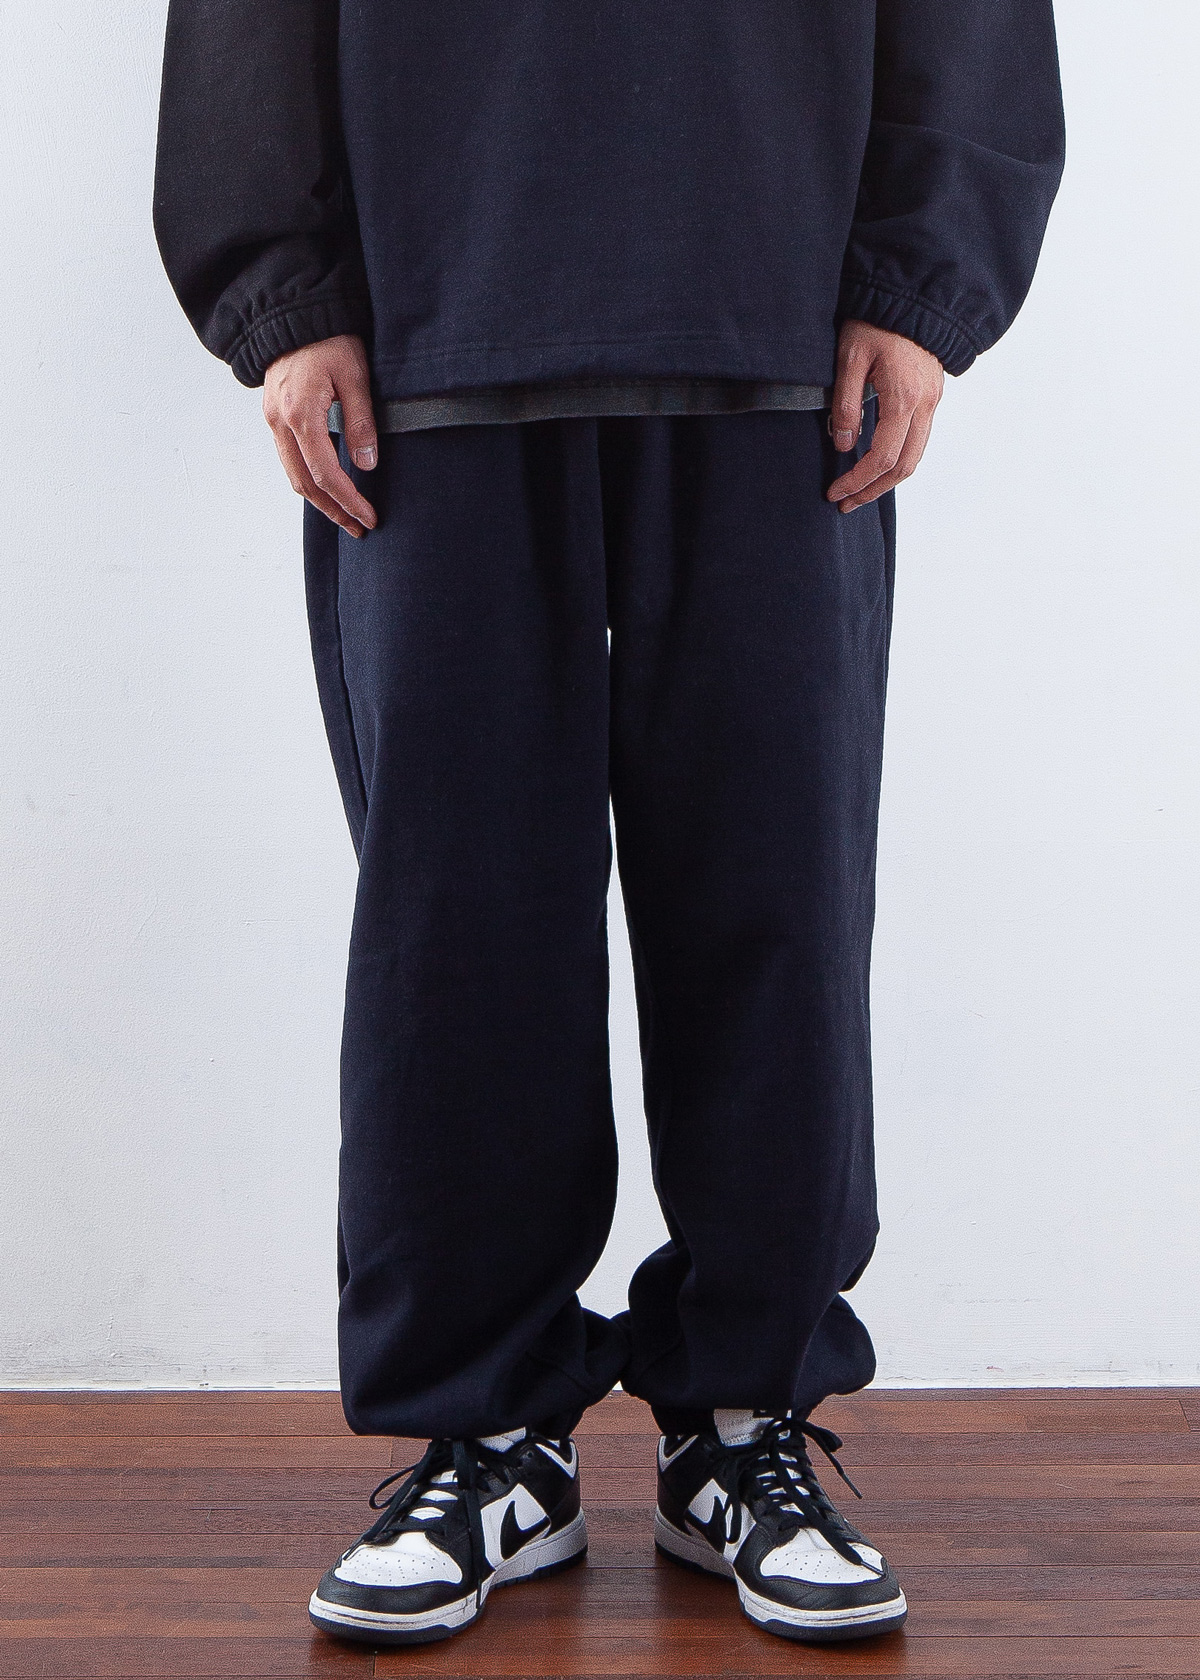 -[OURSELVES] LOGO PLAY SWEAT PANTS (navy/black)